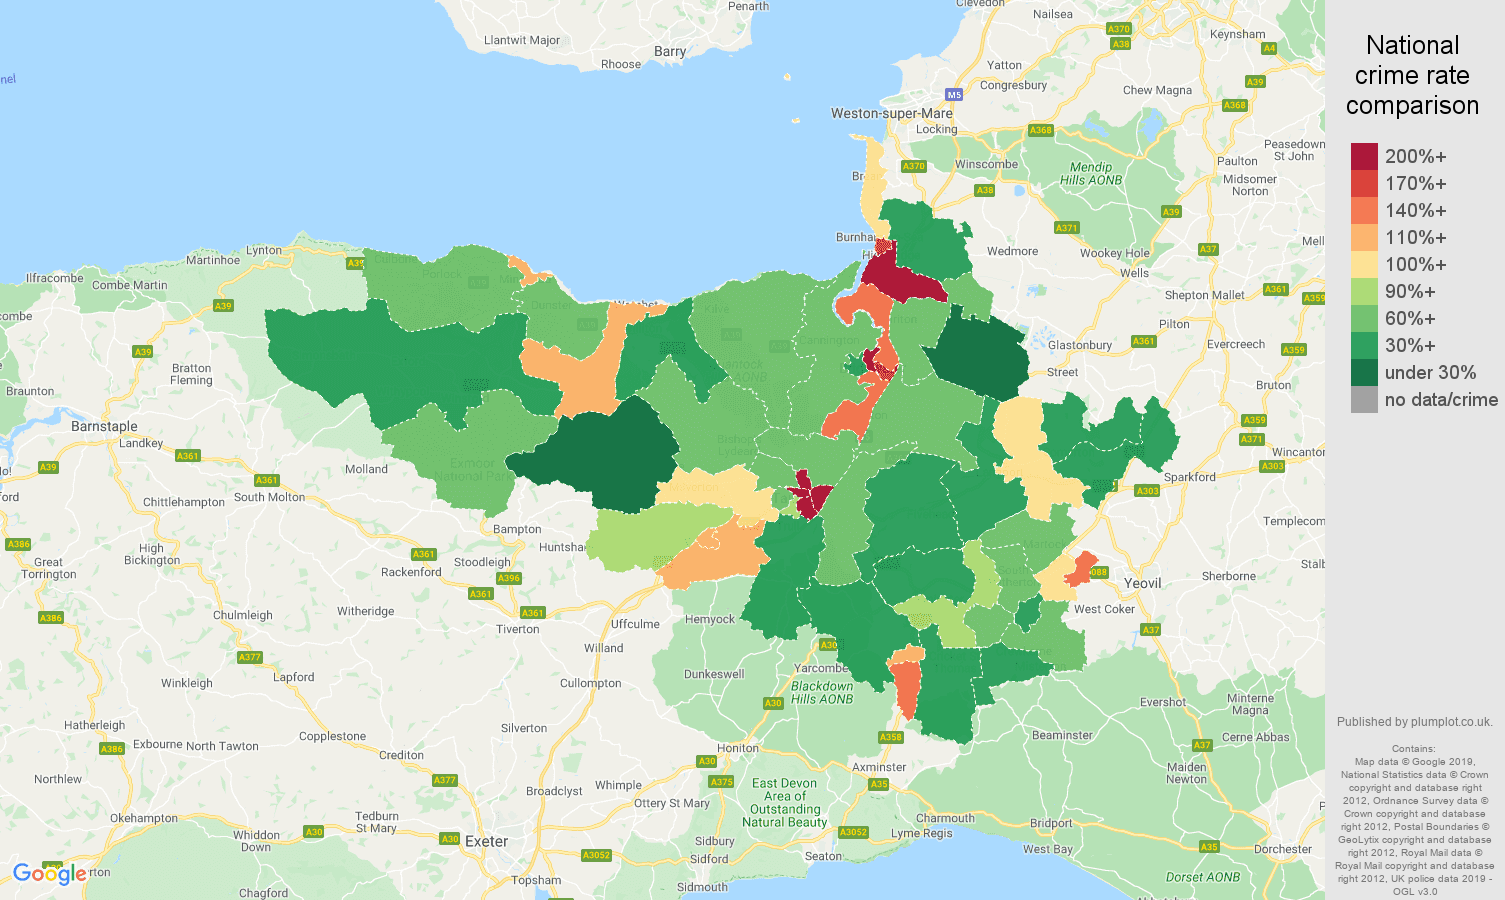 Taunton public order crime rate comparison map